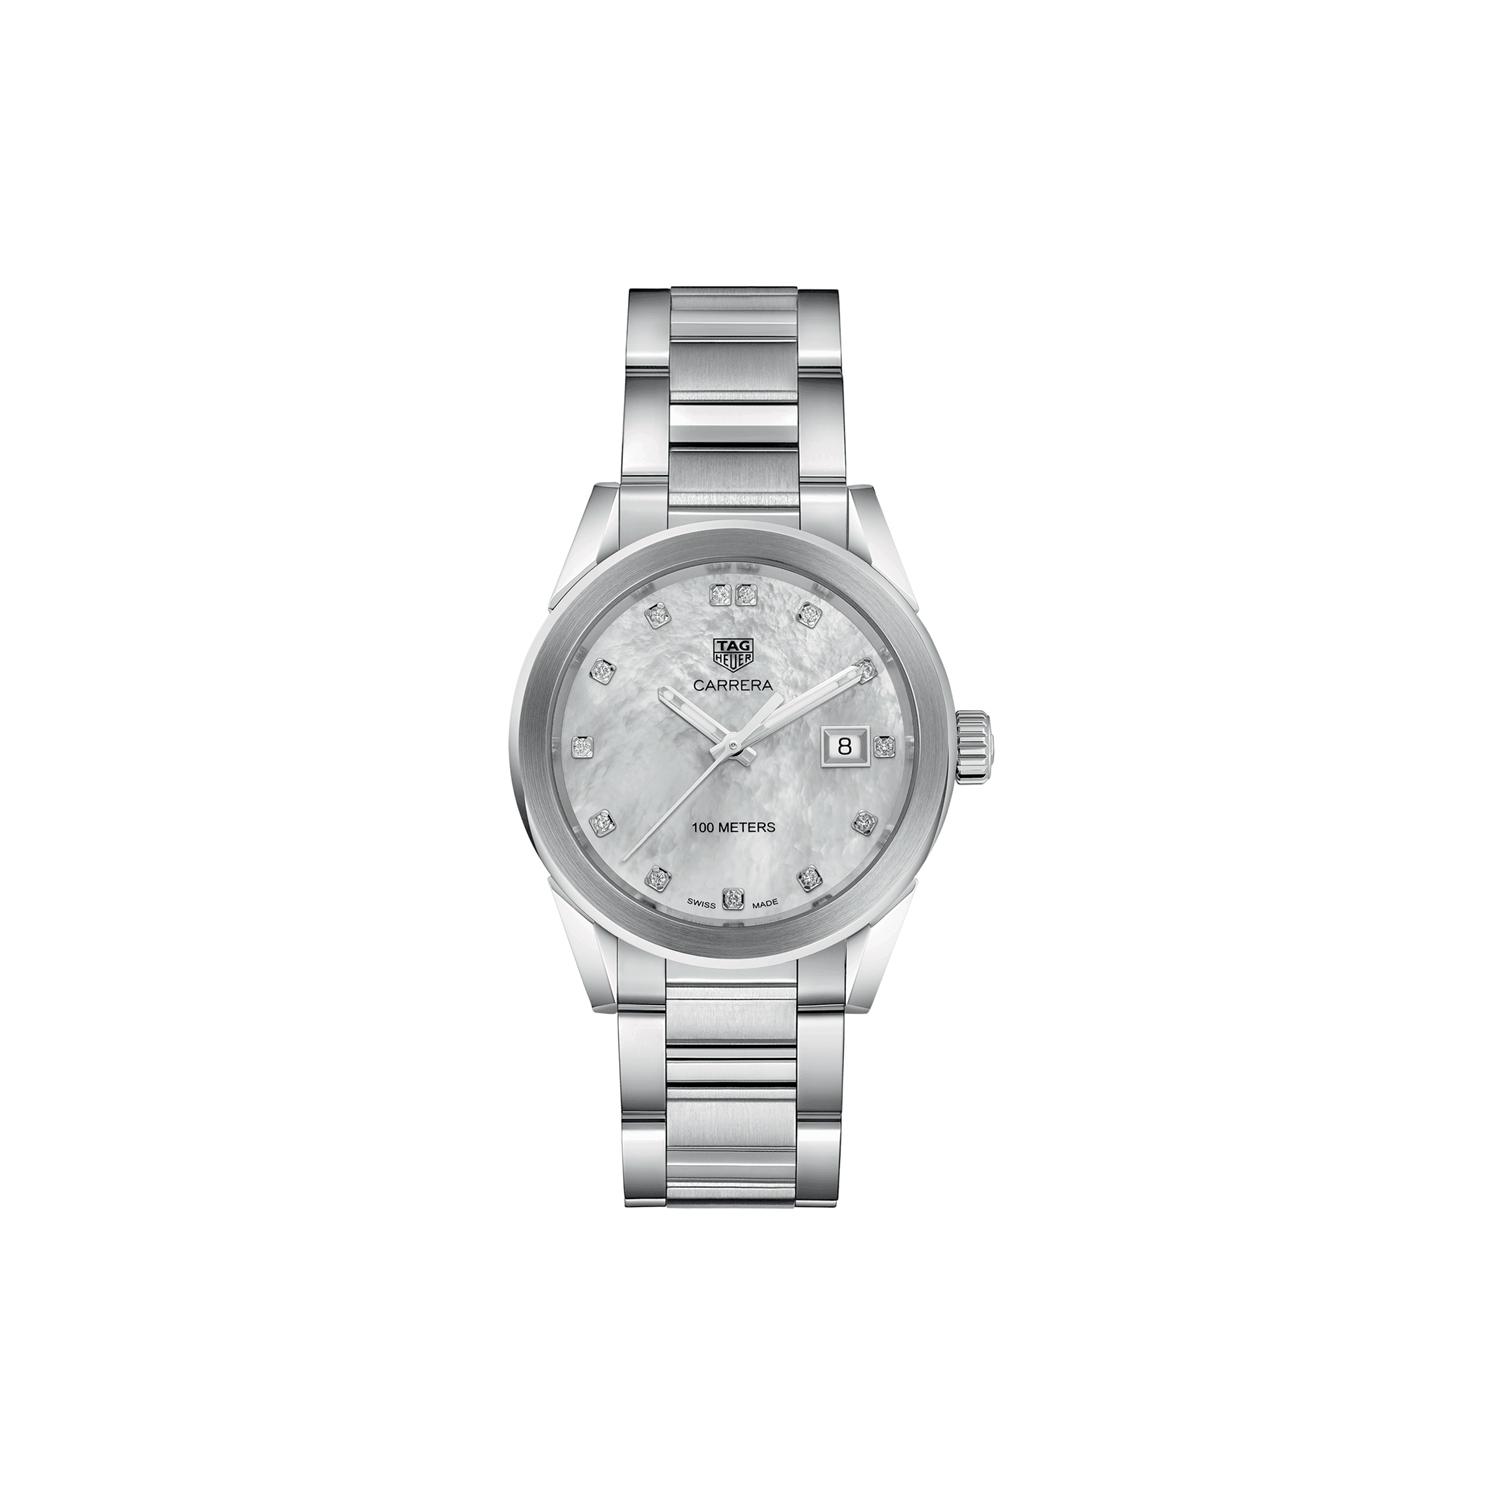 69cda200dc964 Tag Heuer Carrera Diamond Mother of Pearl Dial Ladies Watch WBG1312.BA0758  - Online Only